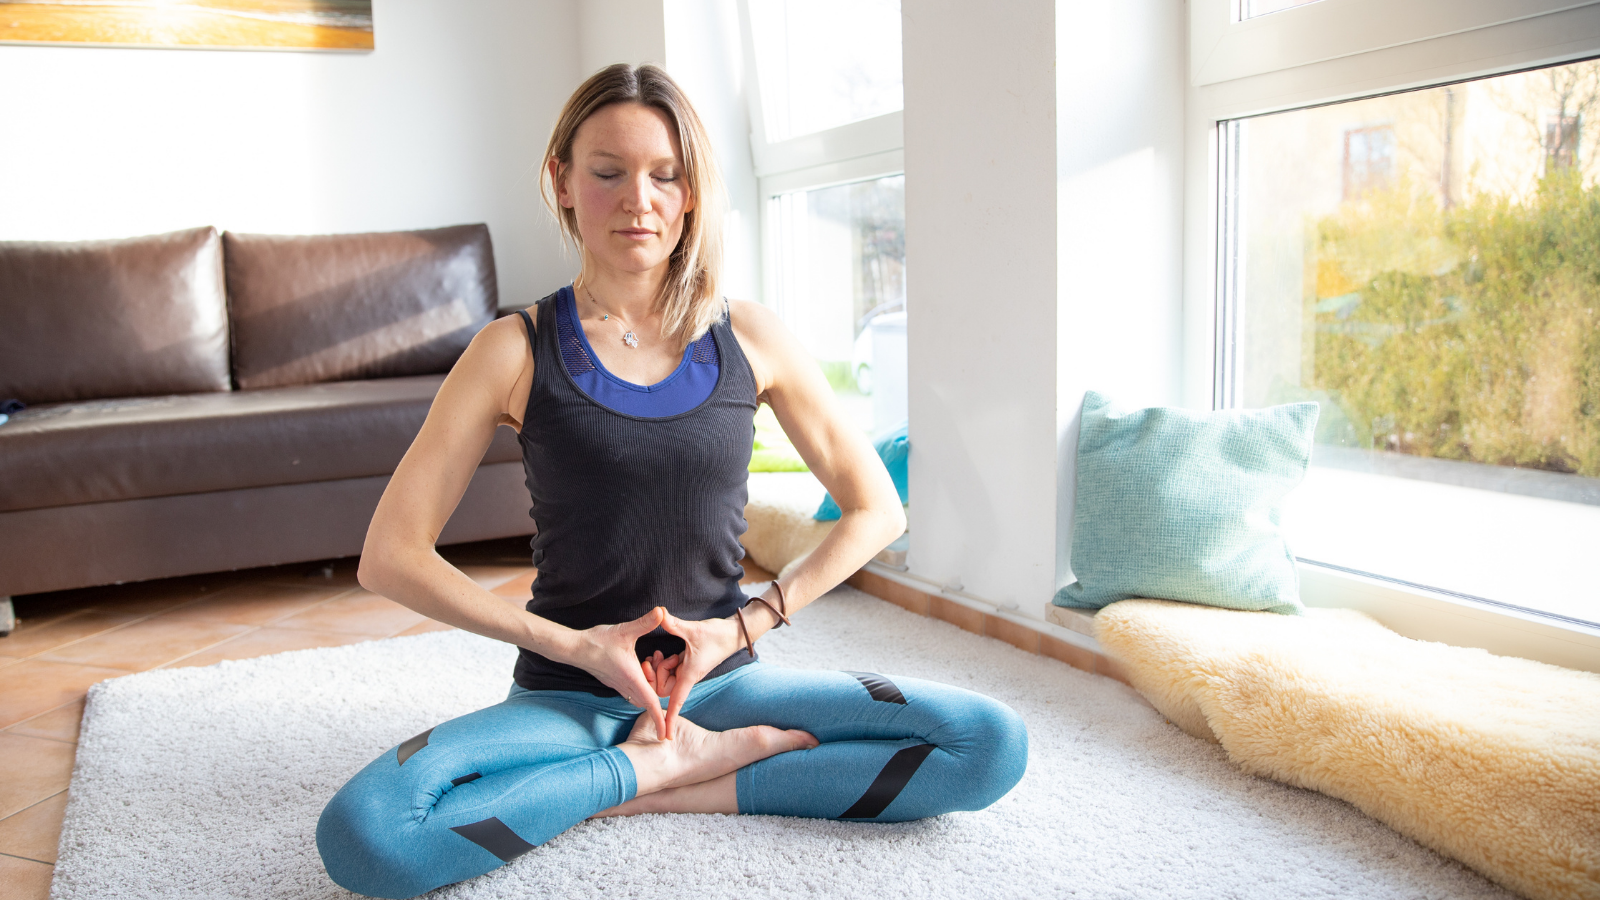 Yoni Mudra for quieting the mind and creating inner peace